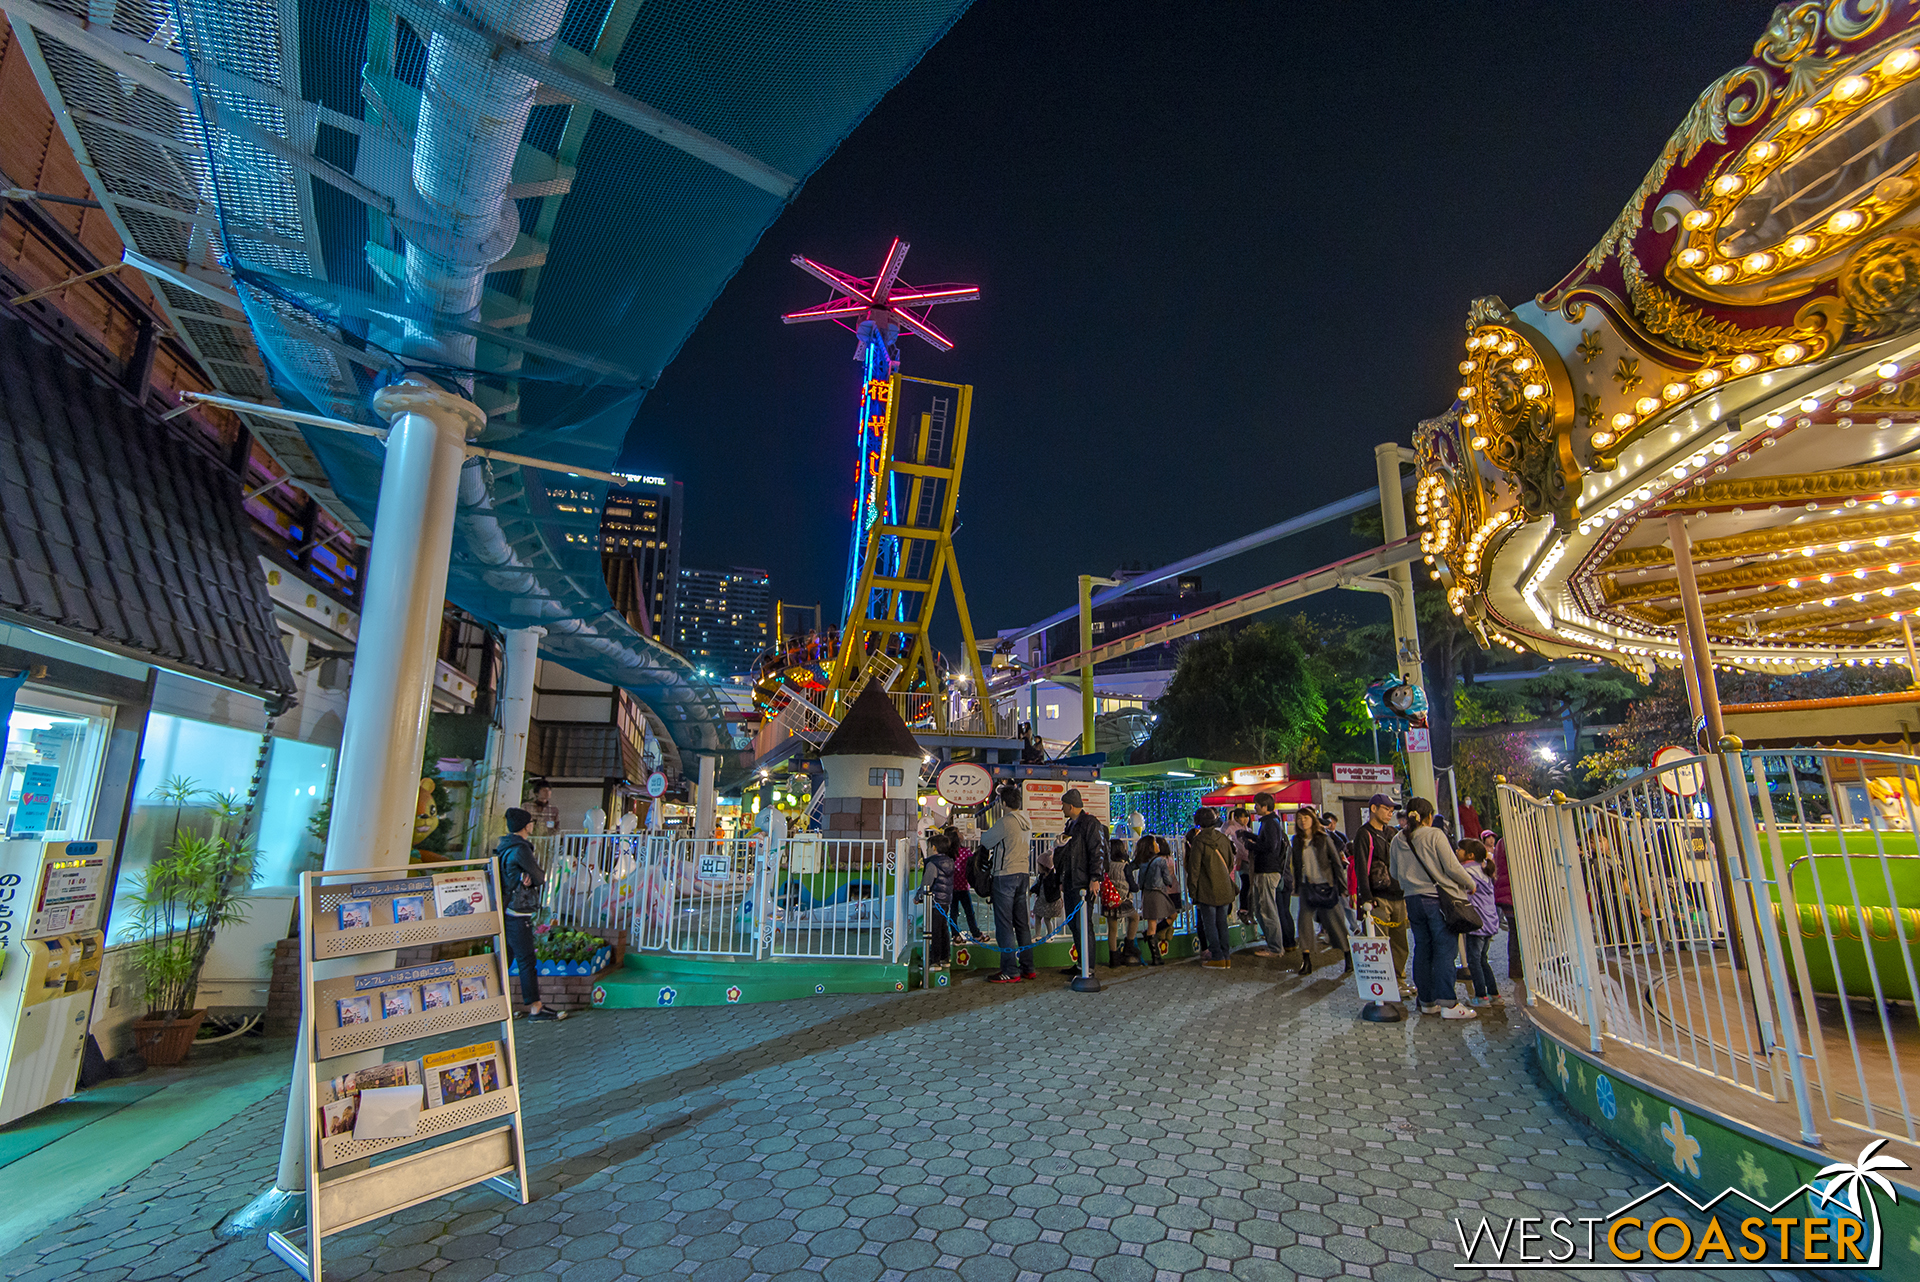 The entry into the midway at night (from last year, since Bee Tower no longer stands).